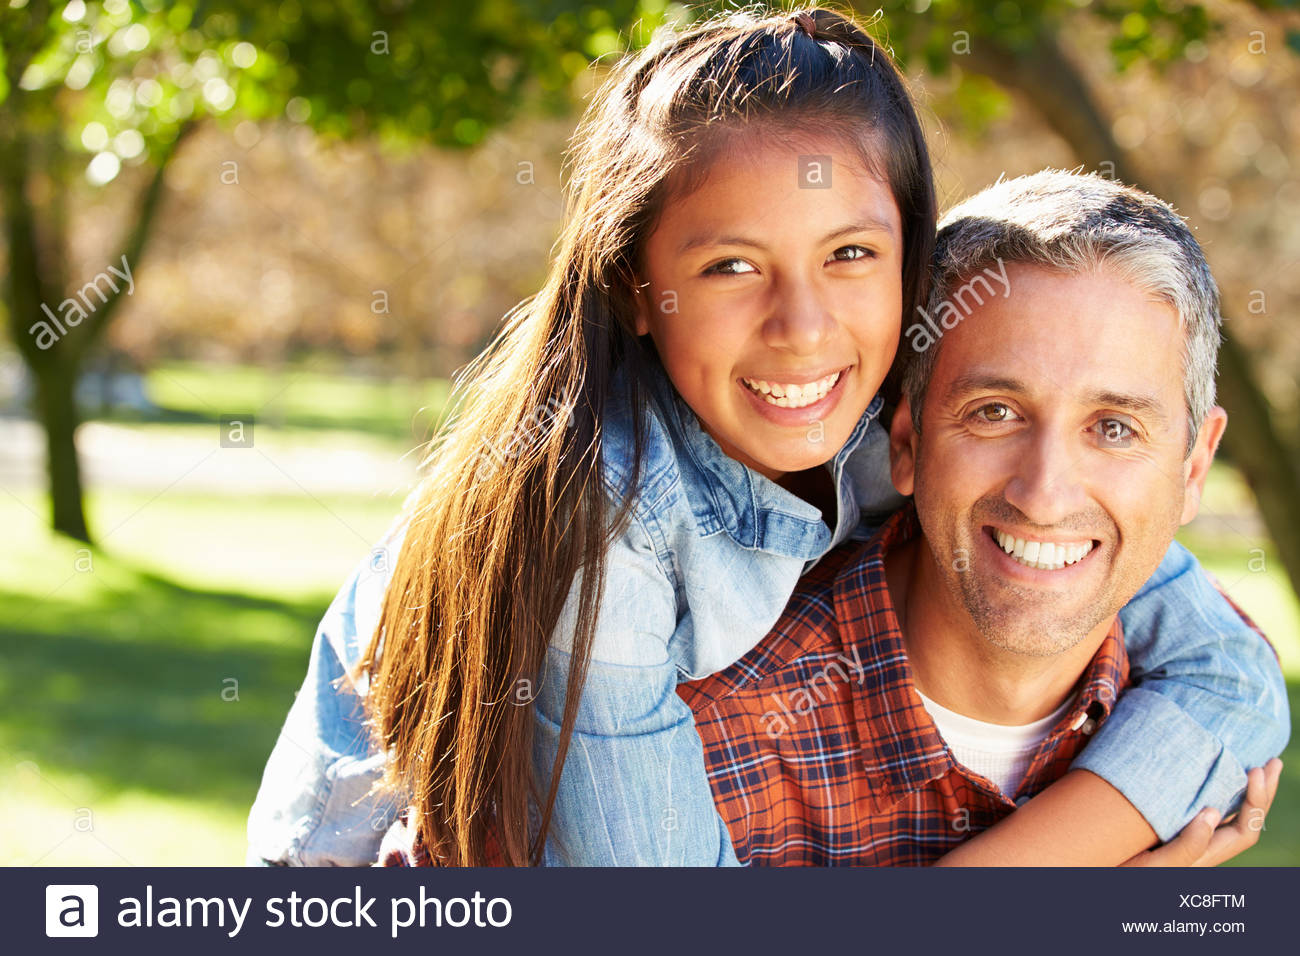 Portrait Of Father And Daughter In Countryside - Stock Image